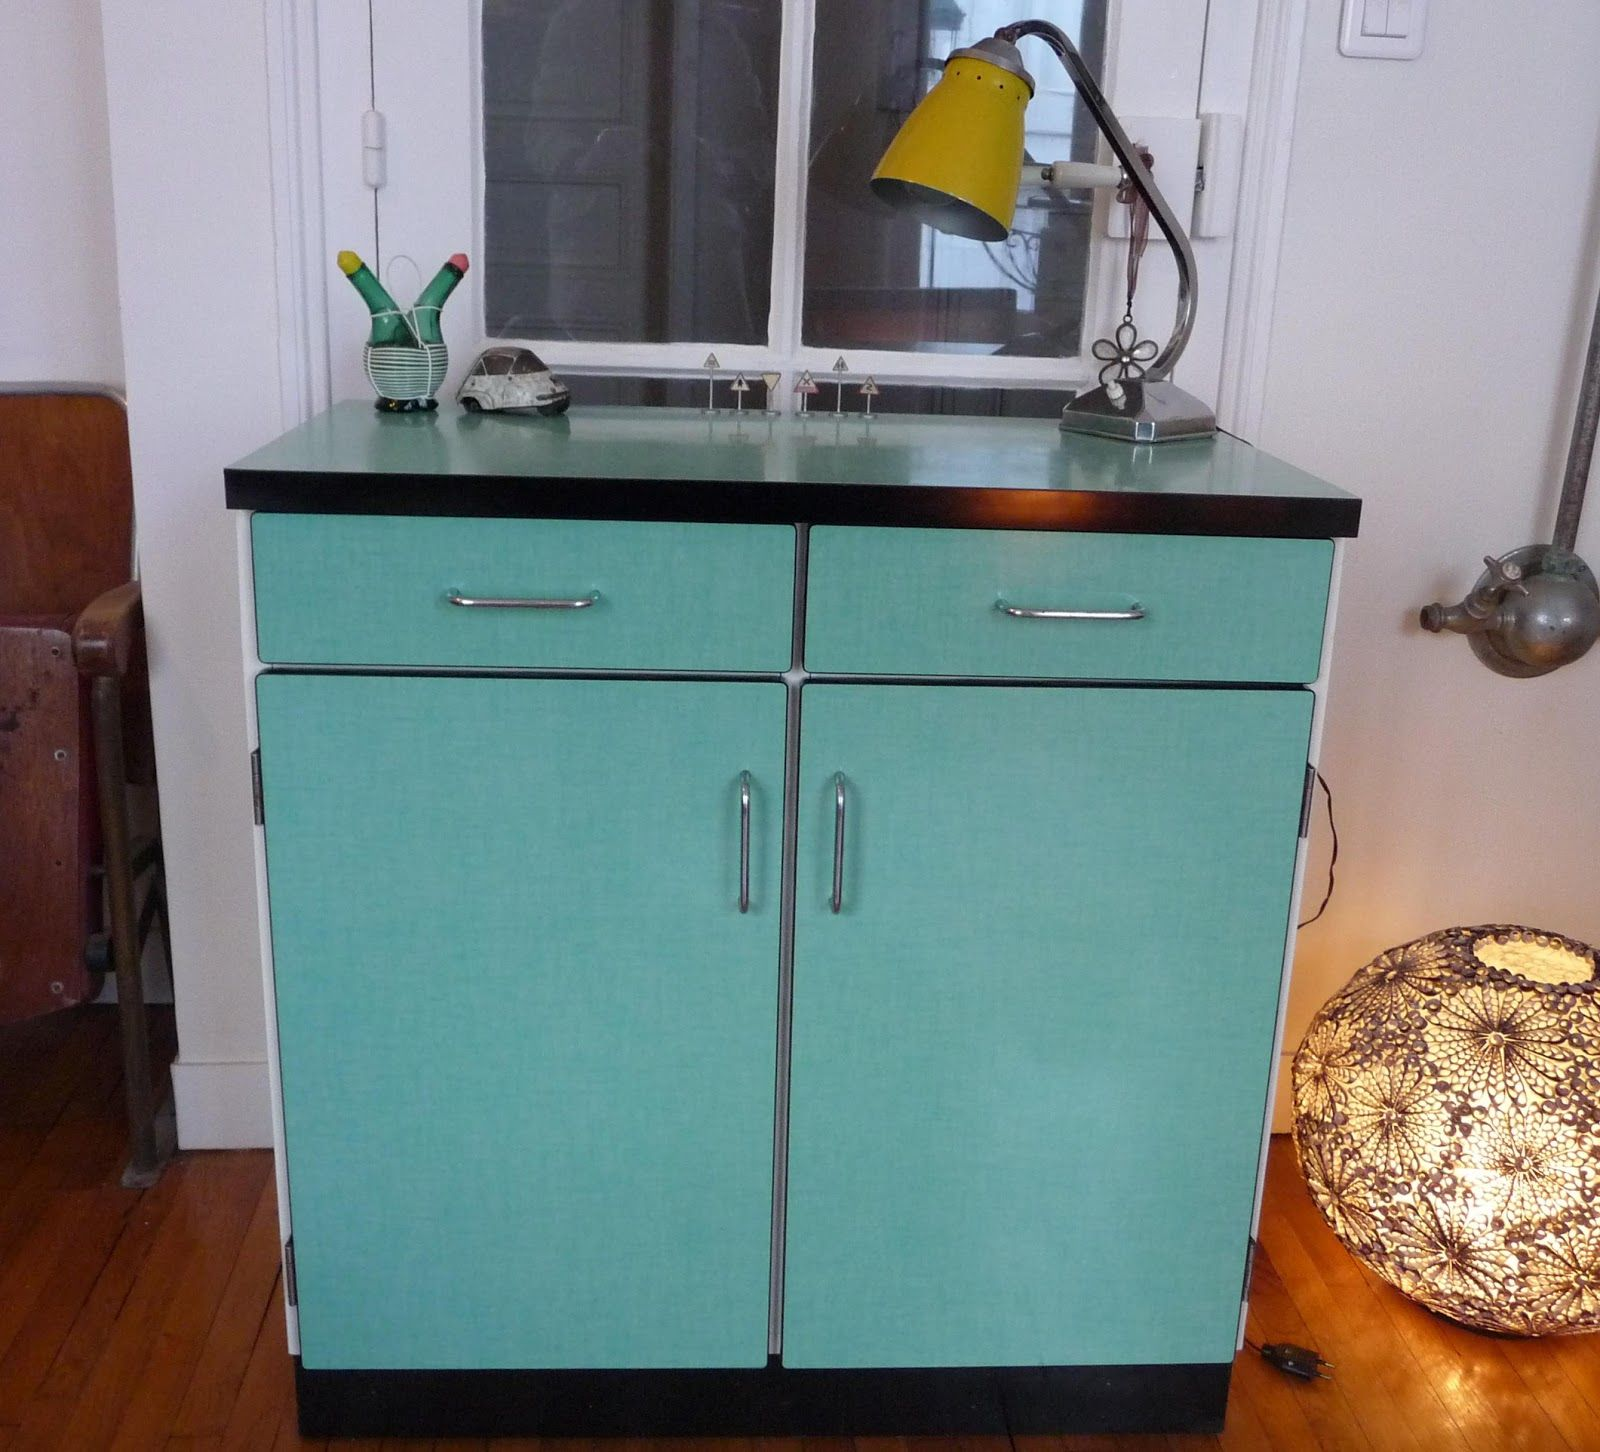 petit buffet en formica turquoise furniture en 2019 vintage furniture kitchen et furniture. Black Bedroom Furniture Sets. Home Design Ideas